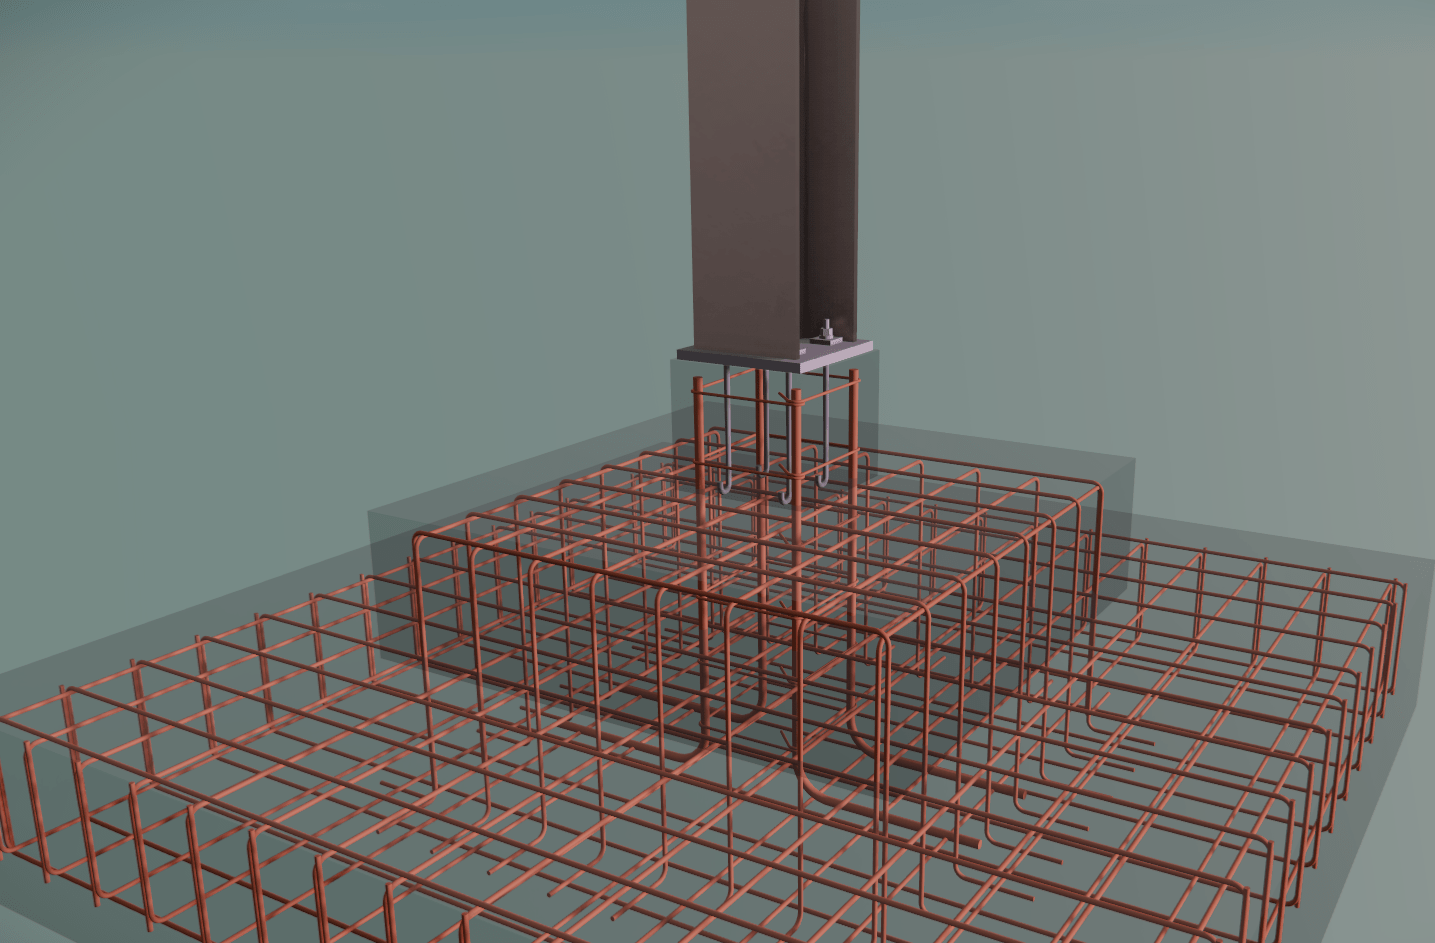 stepped-reinforced-concrete-foundation-render